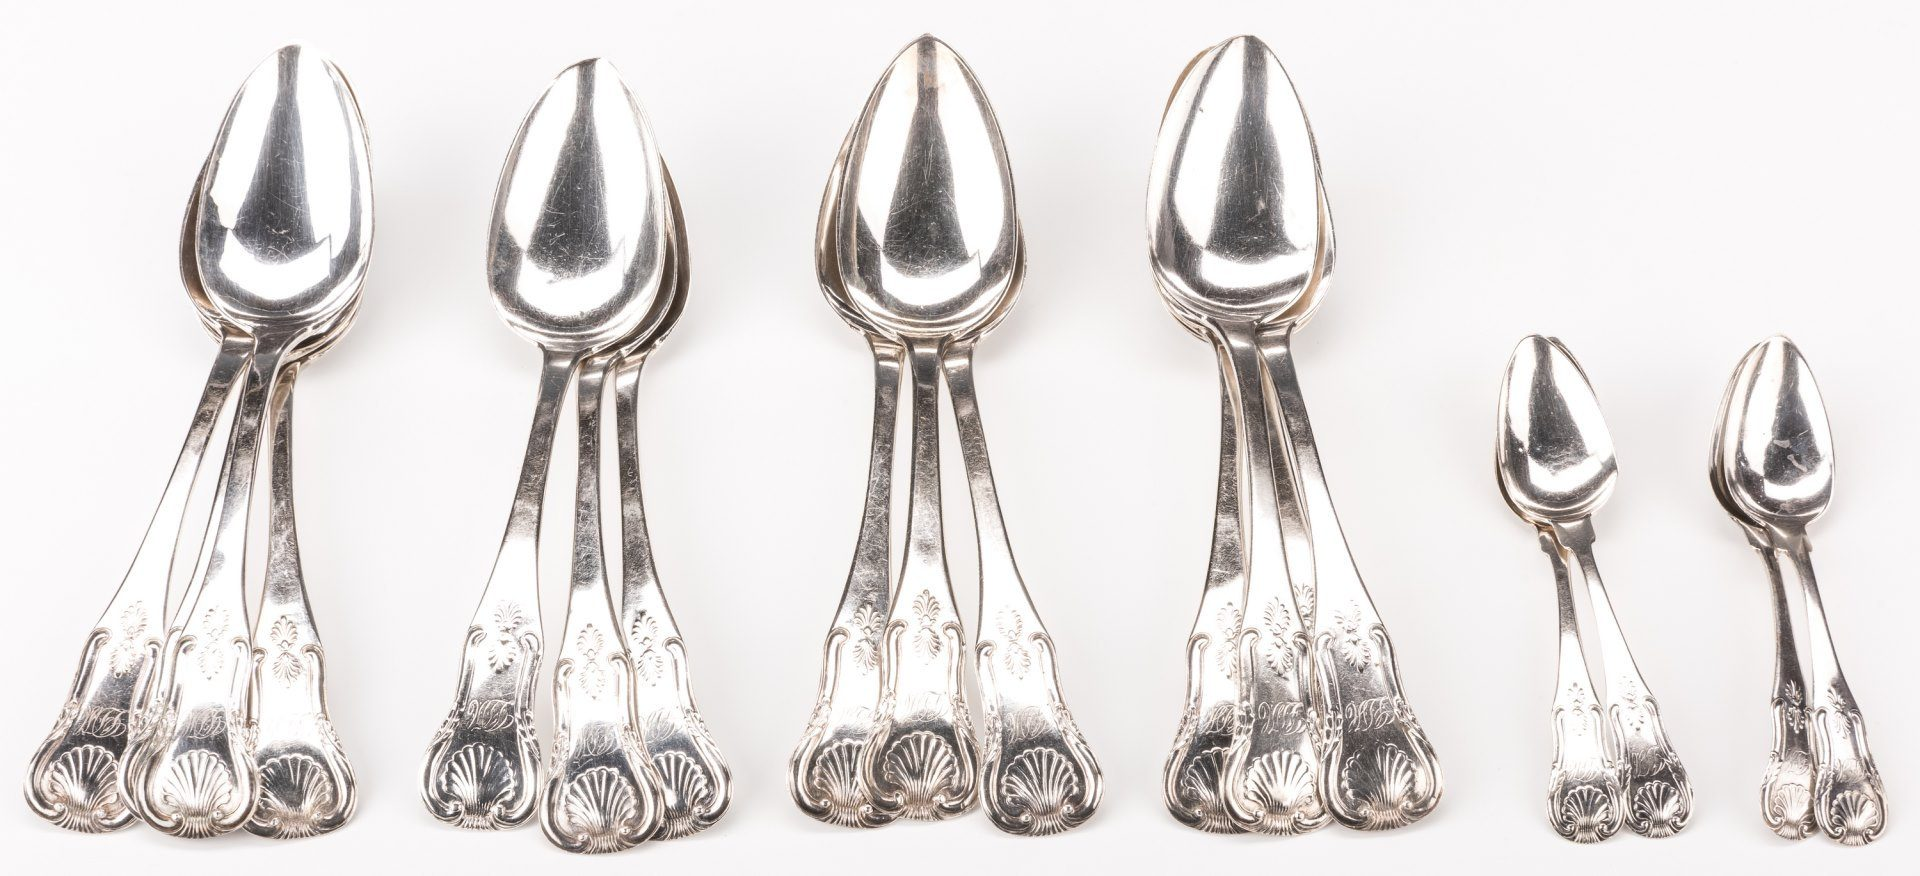 Lot 201: 14 Anthony Rasch Spoons plus 4 others